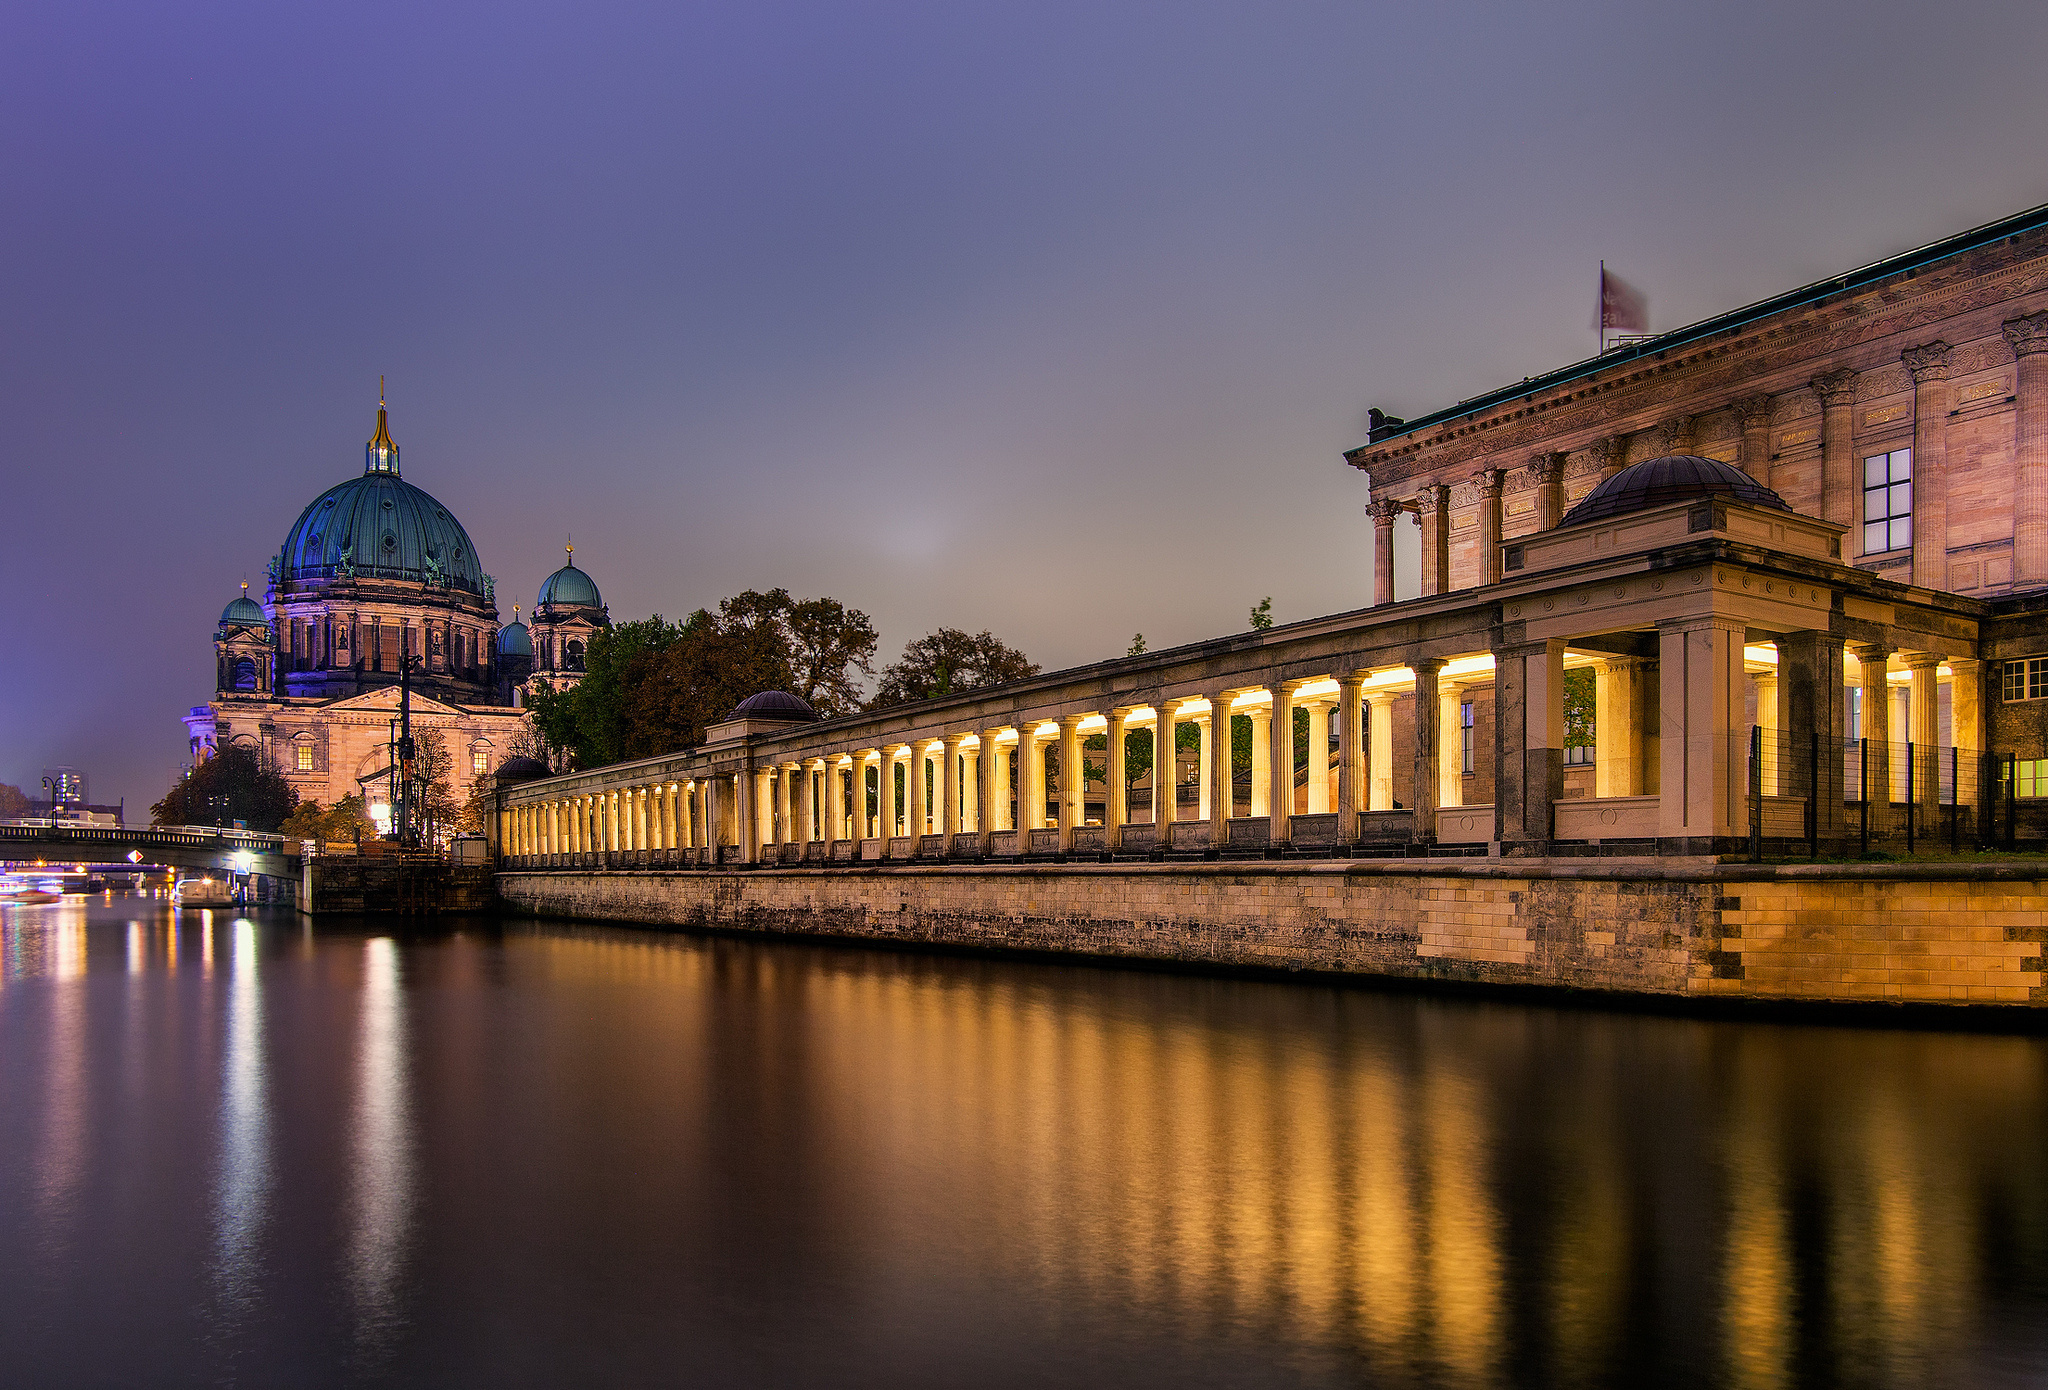 night germany berlin cathedral museum island buildings